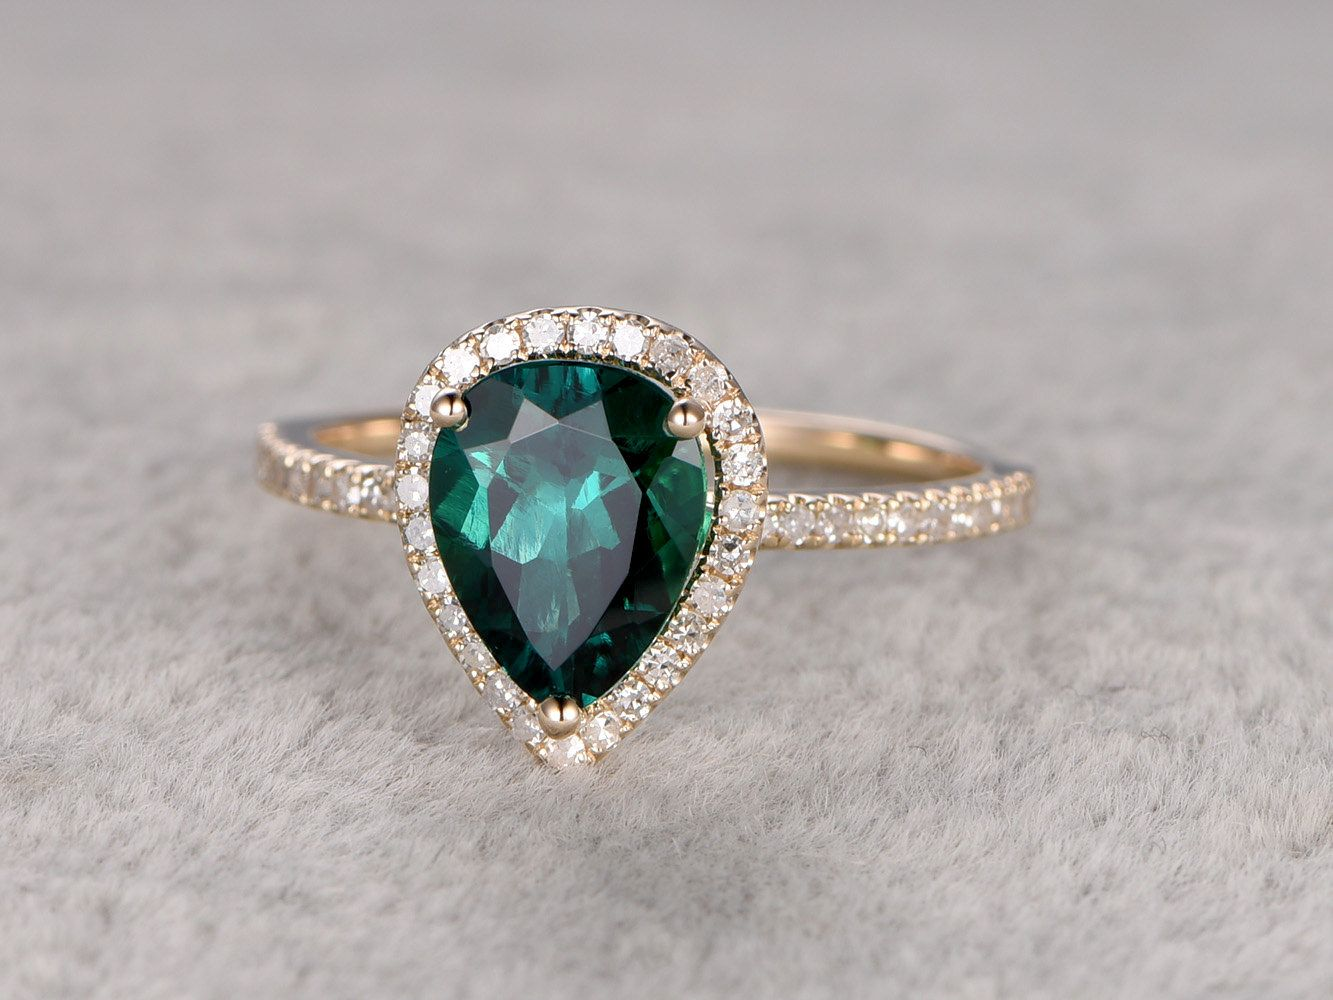 emerald engagement ring emerald wedding rings Emerald Engagement ring Yellow gold Halo Diamond wedding ring 14k mm Pear Shaped Cut Green Treated Gemstone Promise Anniversary Ring Fine